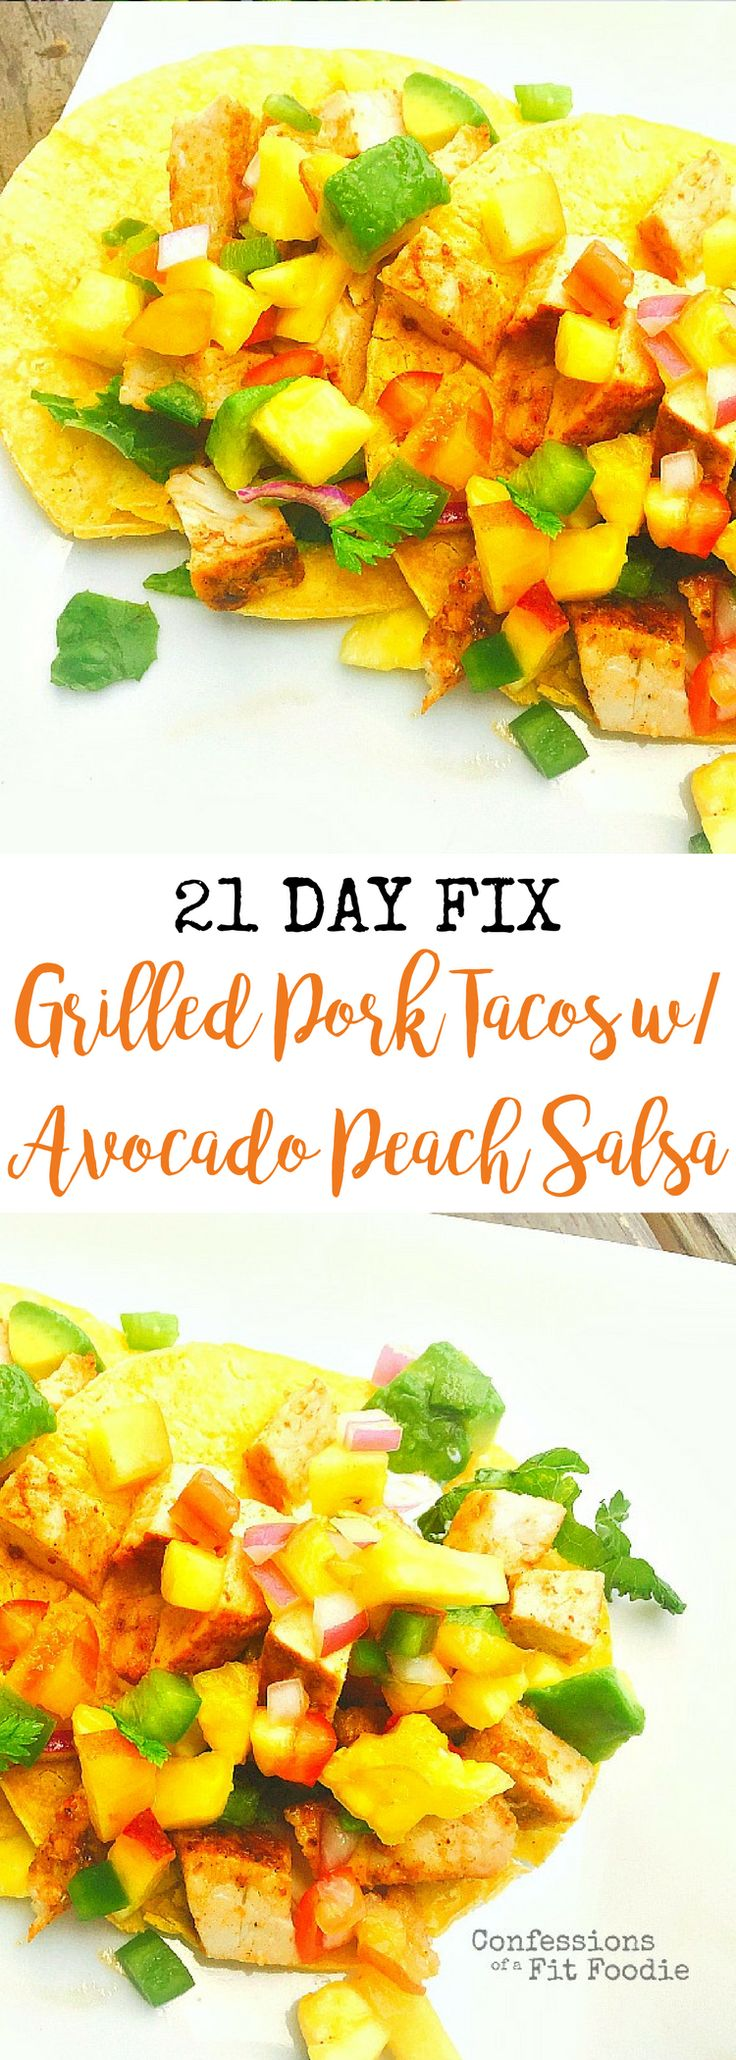 21 Day Fix Grilled Pork Tacos with Avocado Peach Salsa | Confessions of a Fit Foodie